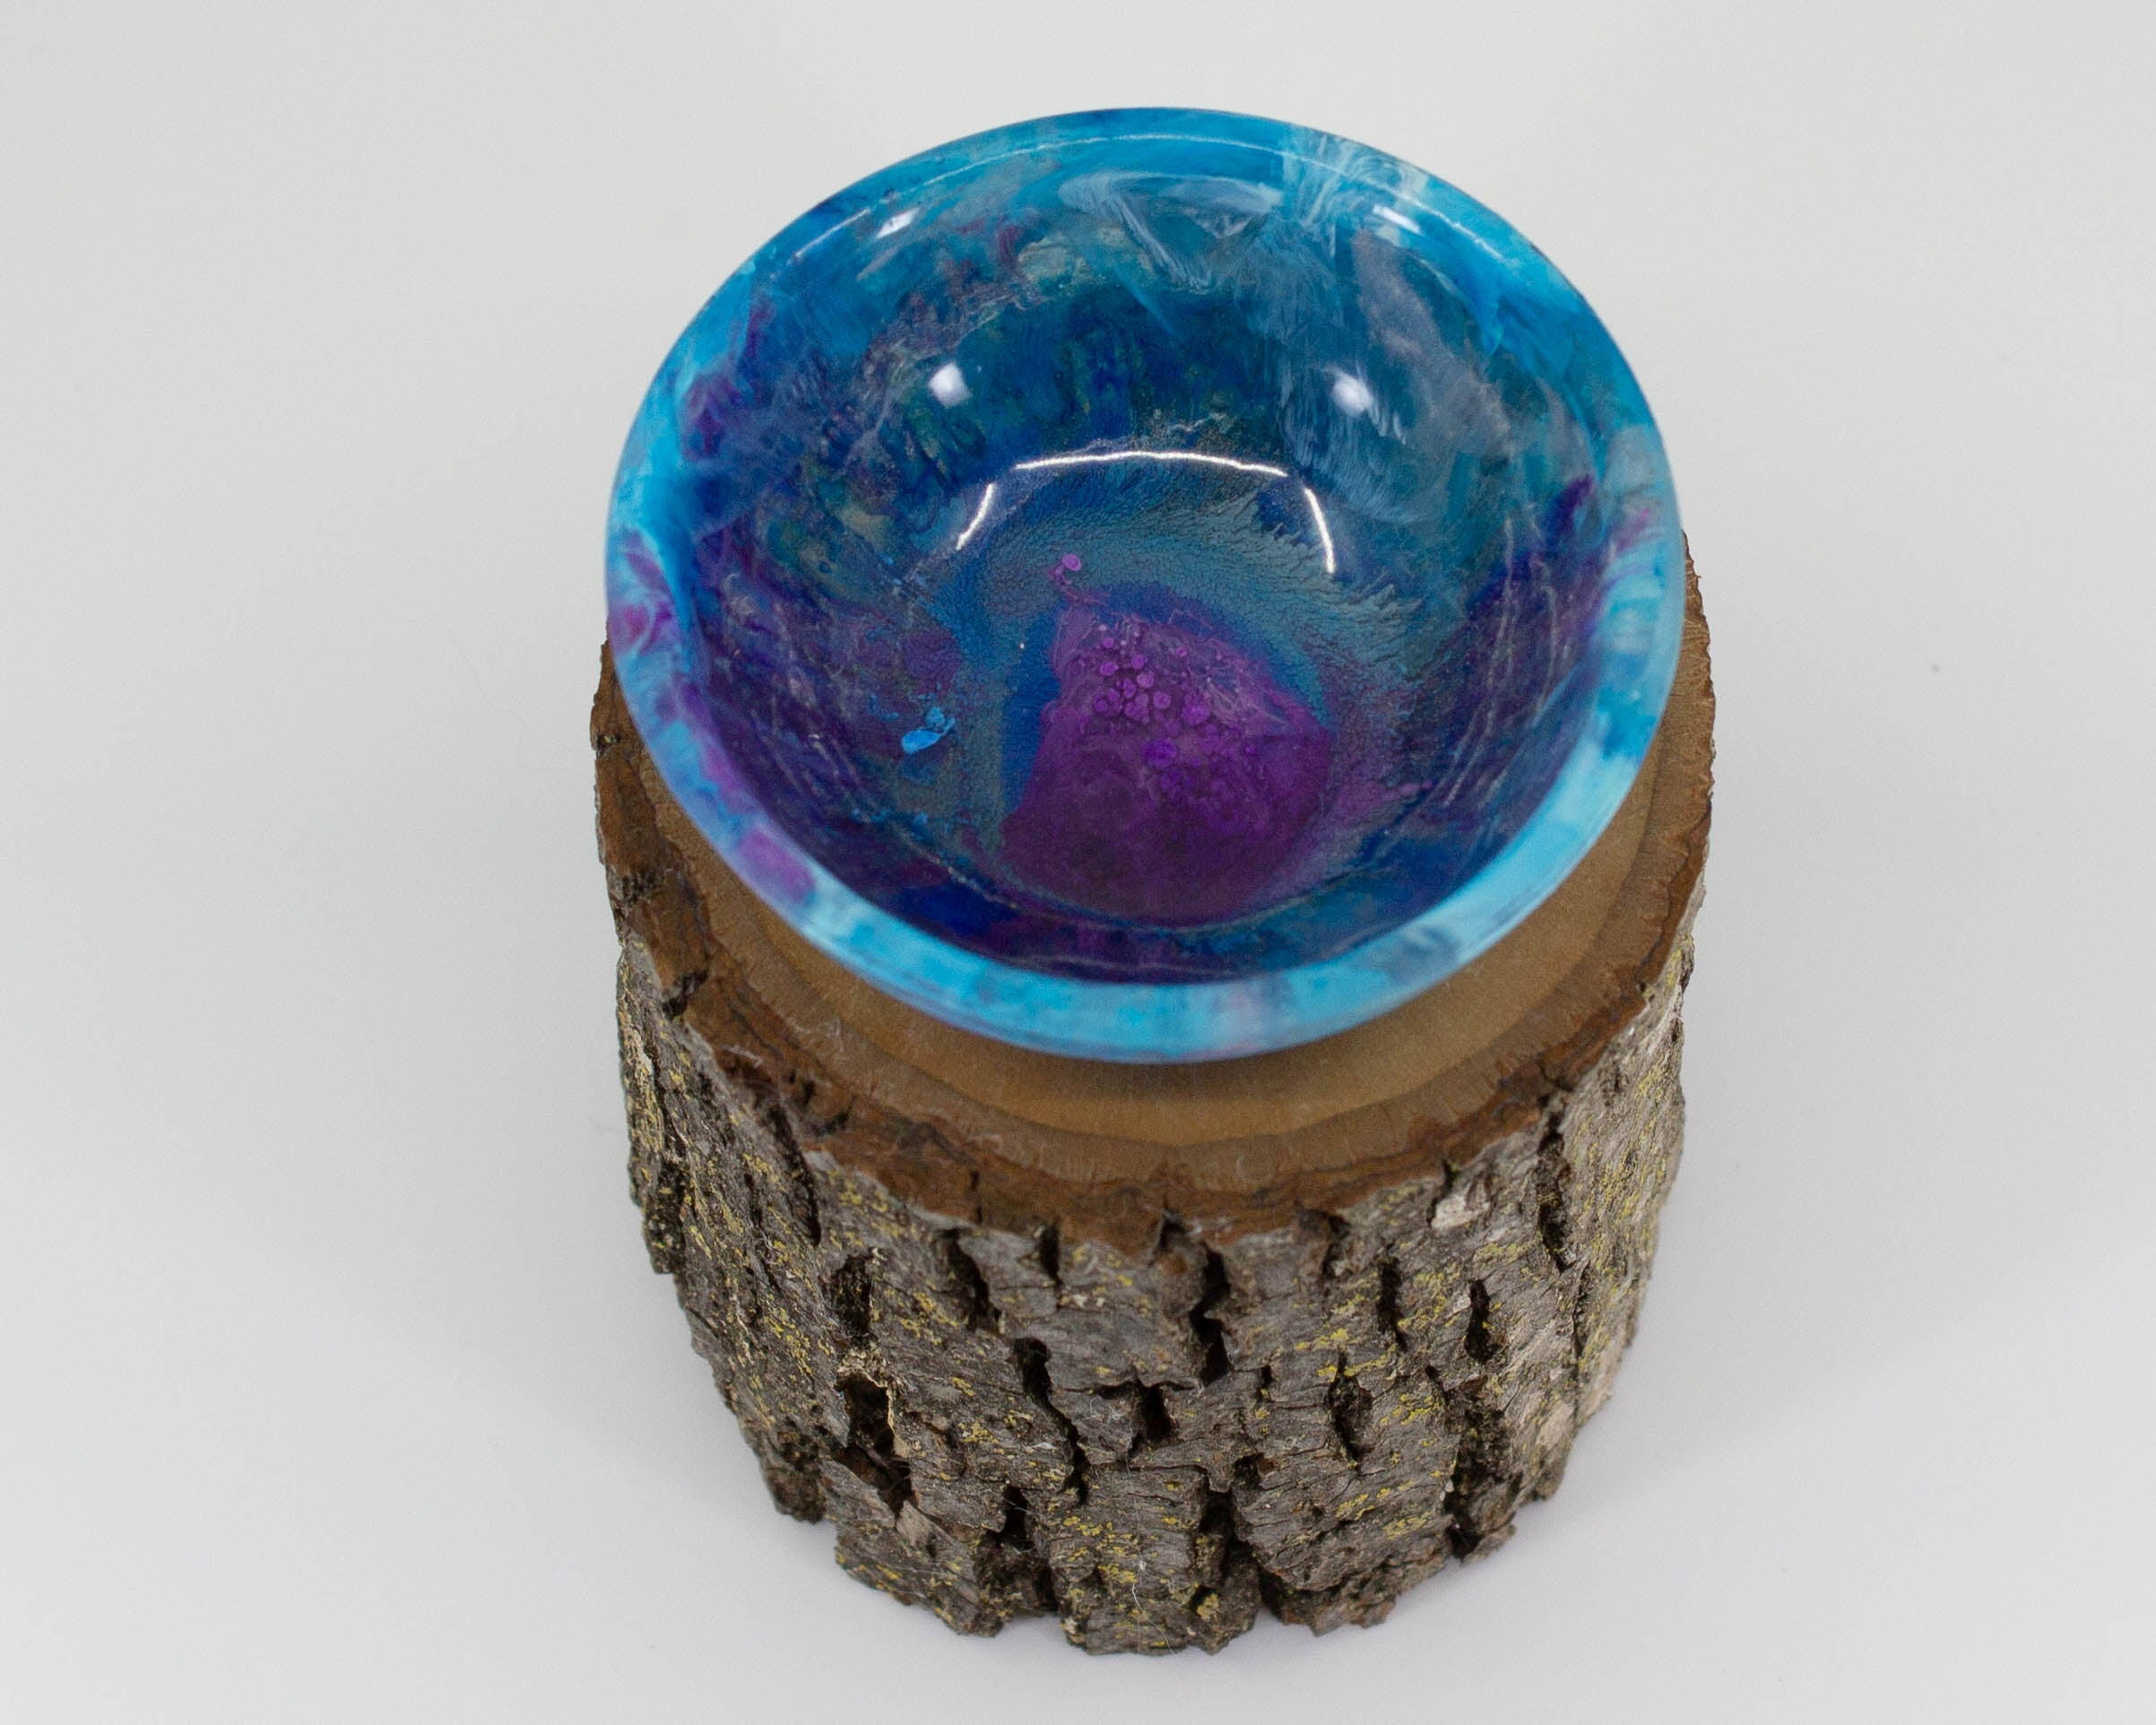 Supported Spinning Bowl - blue and purple